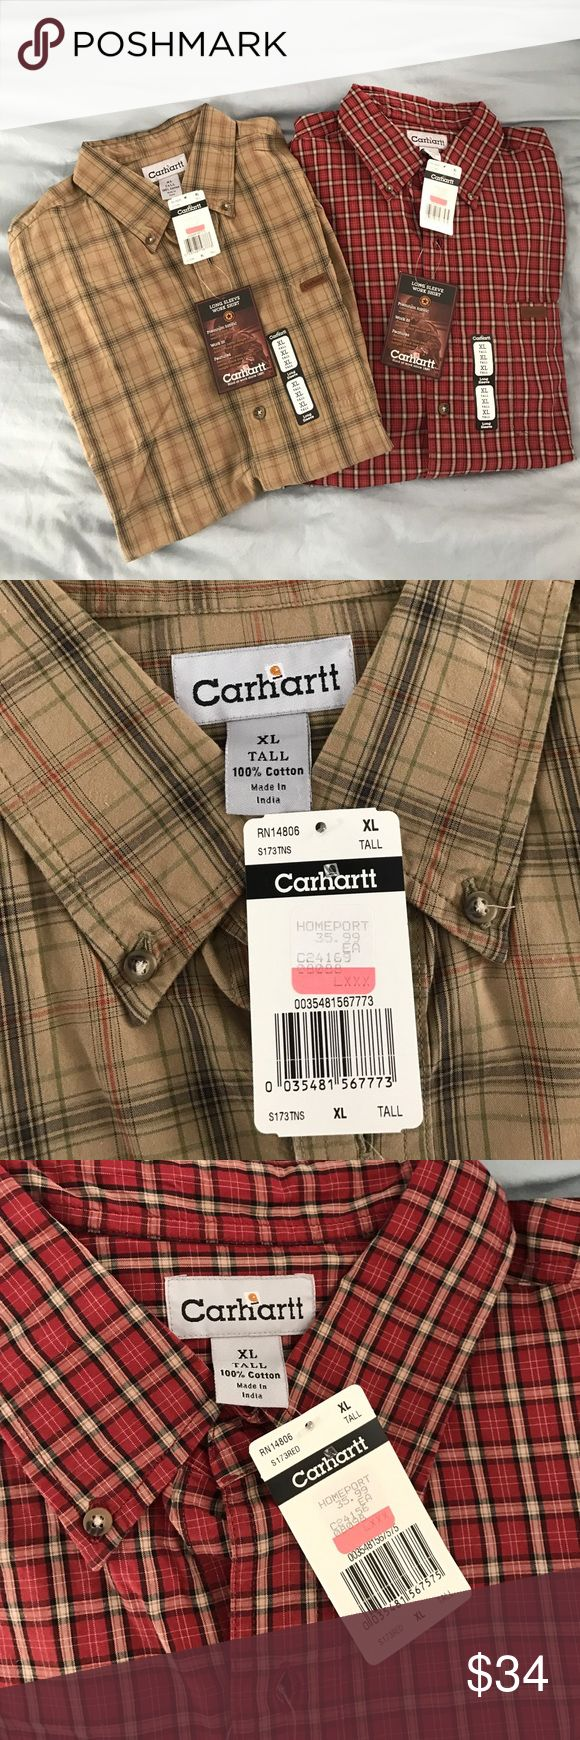 Two Men's Carhartt Button Downs Both are XL tall long sleeve work shirts. One is red, cream, and black. The other is tan, brown, and olive. Neither has been worn - all original tags attached. Originally $36 each. Carhartt Shirts Casual Button Down Shirts